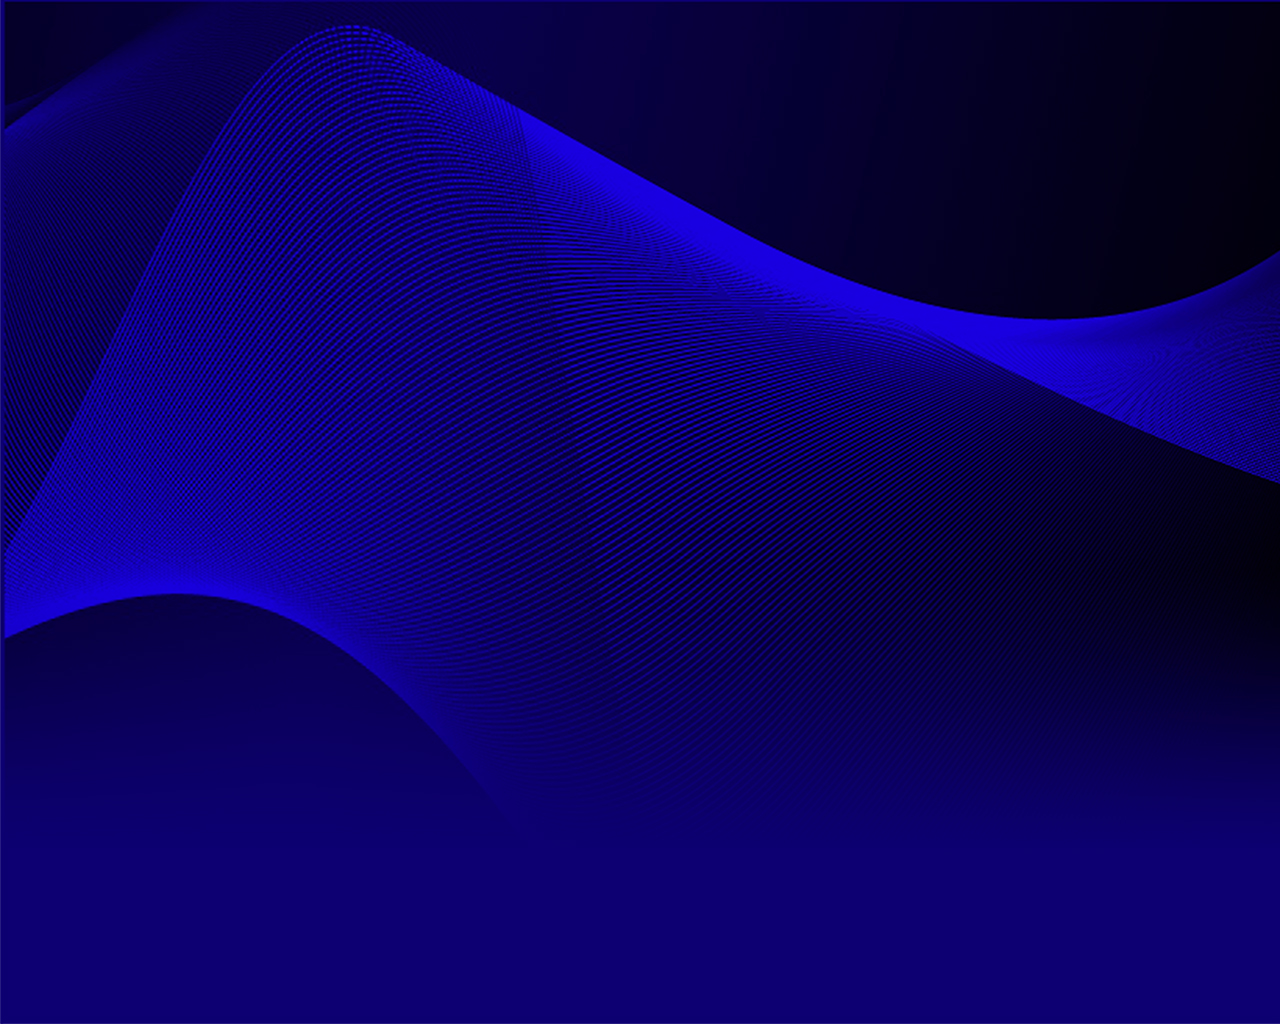 Royal Blue Wavy Abstract Web Background Wallpaper 1280x1024